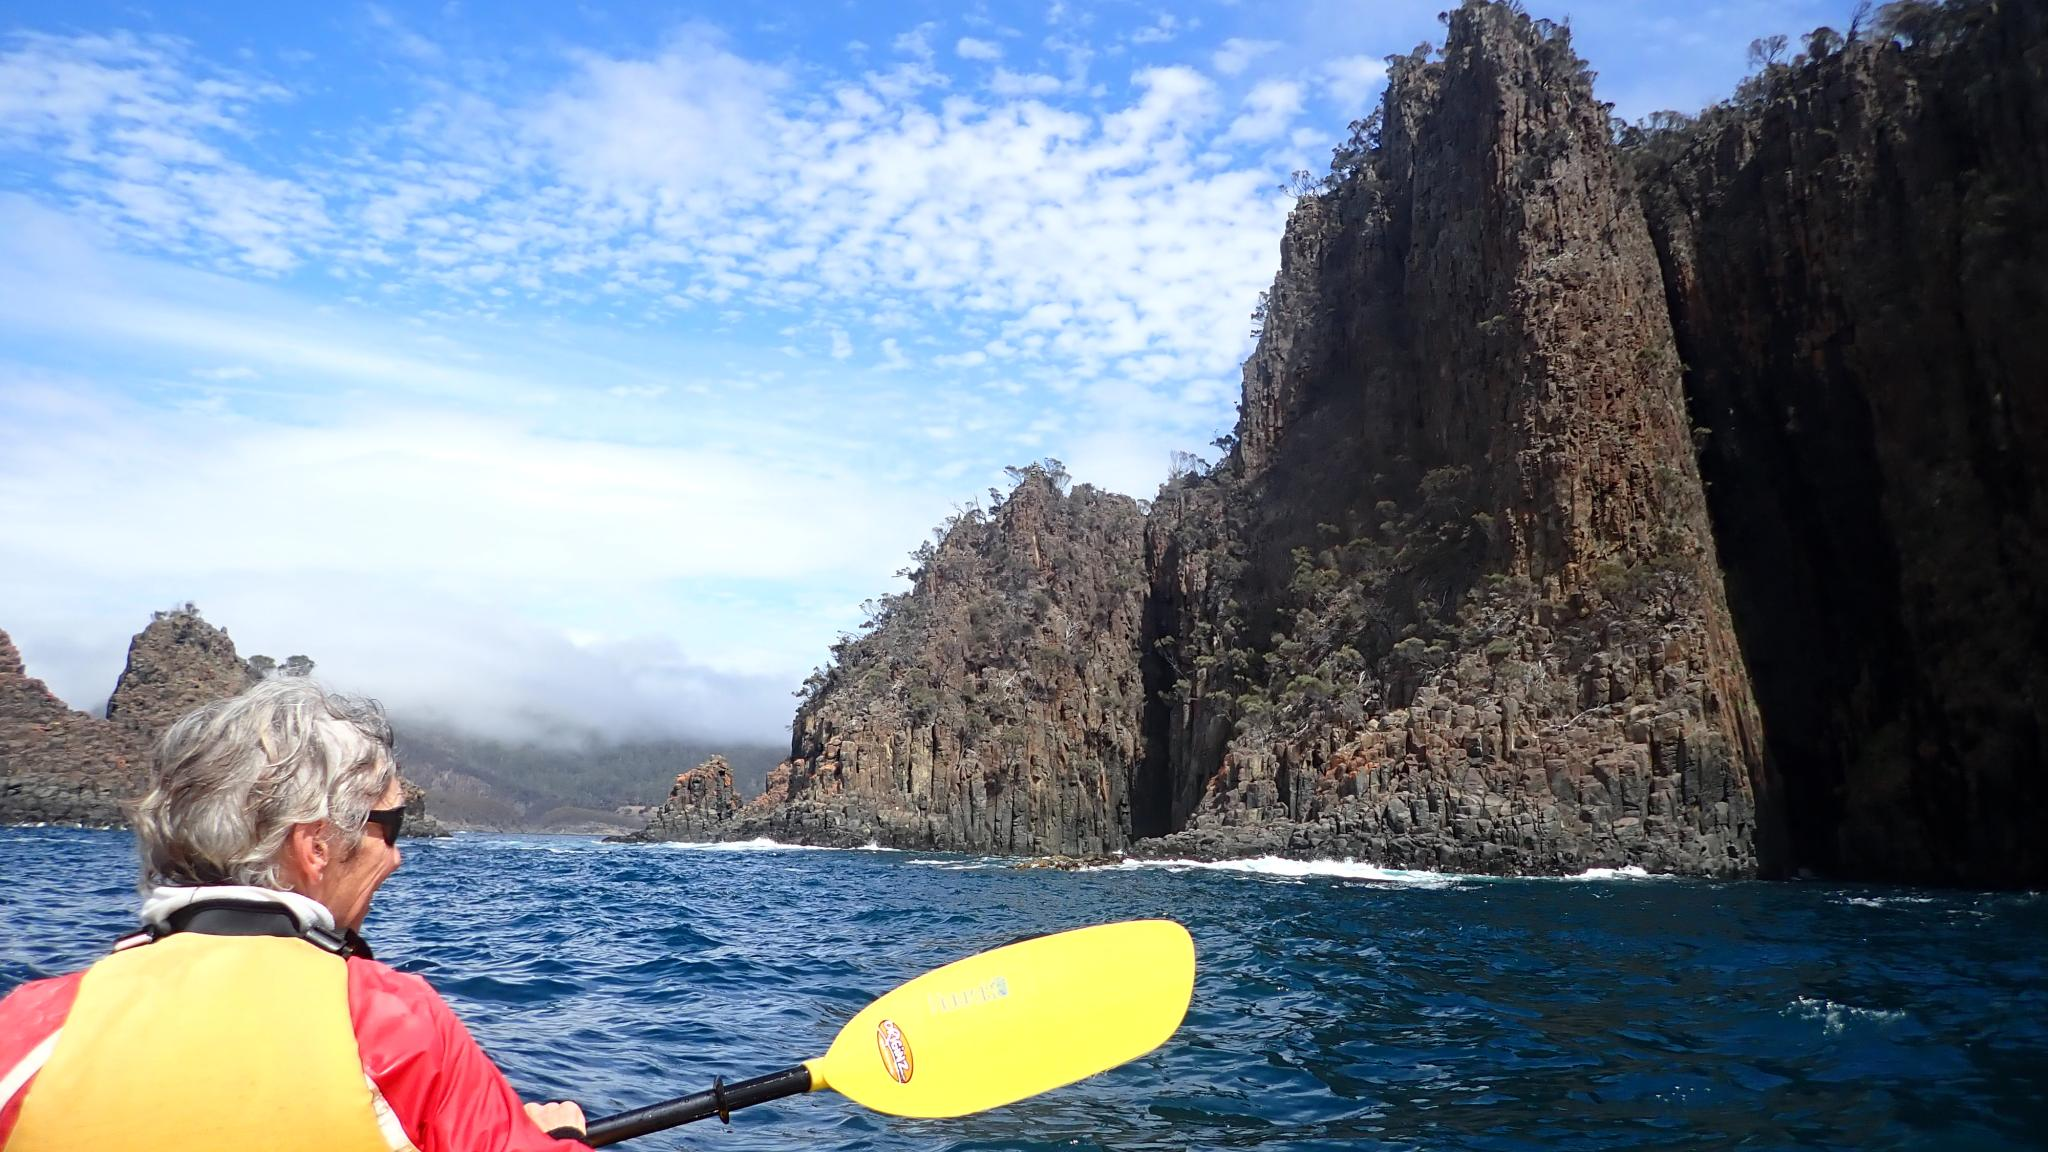 Multiday tour kayaking on the Tasman Peninsula, Hobart, Tasmania